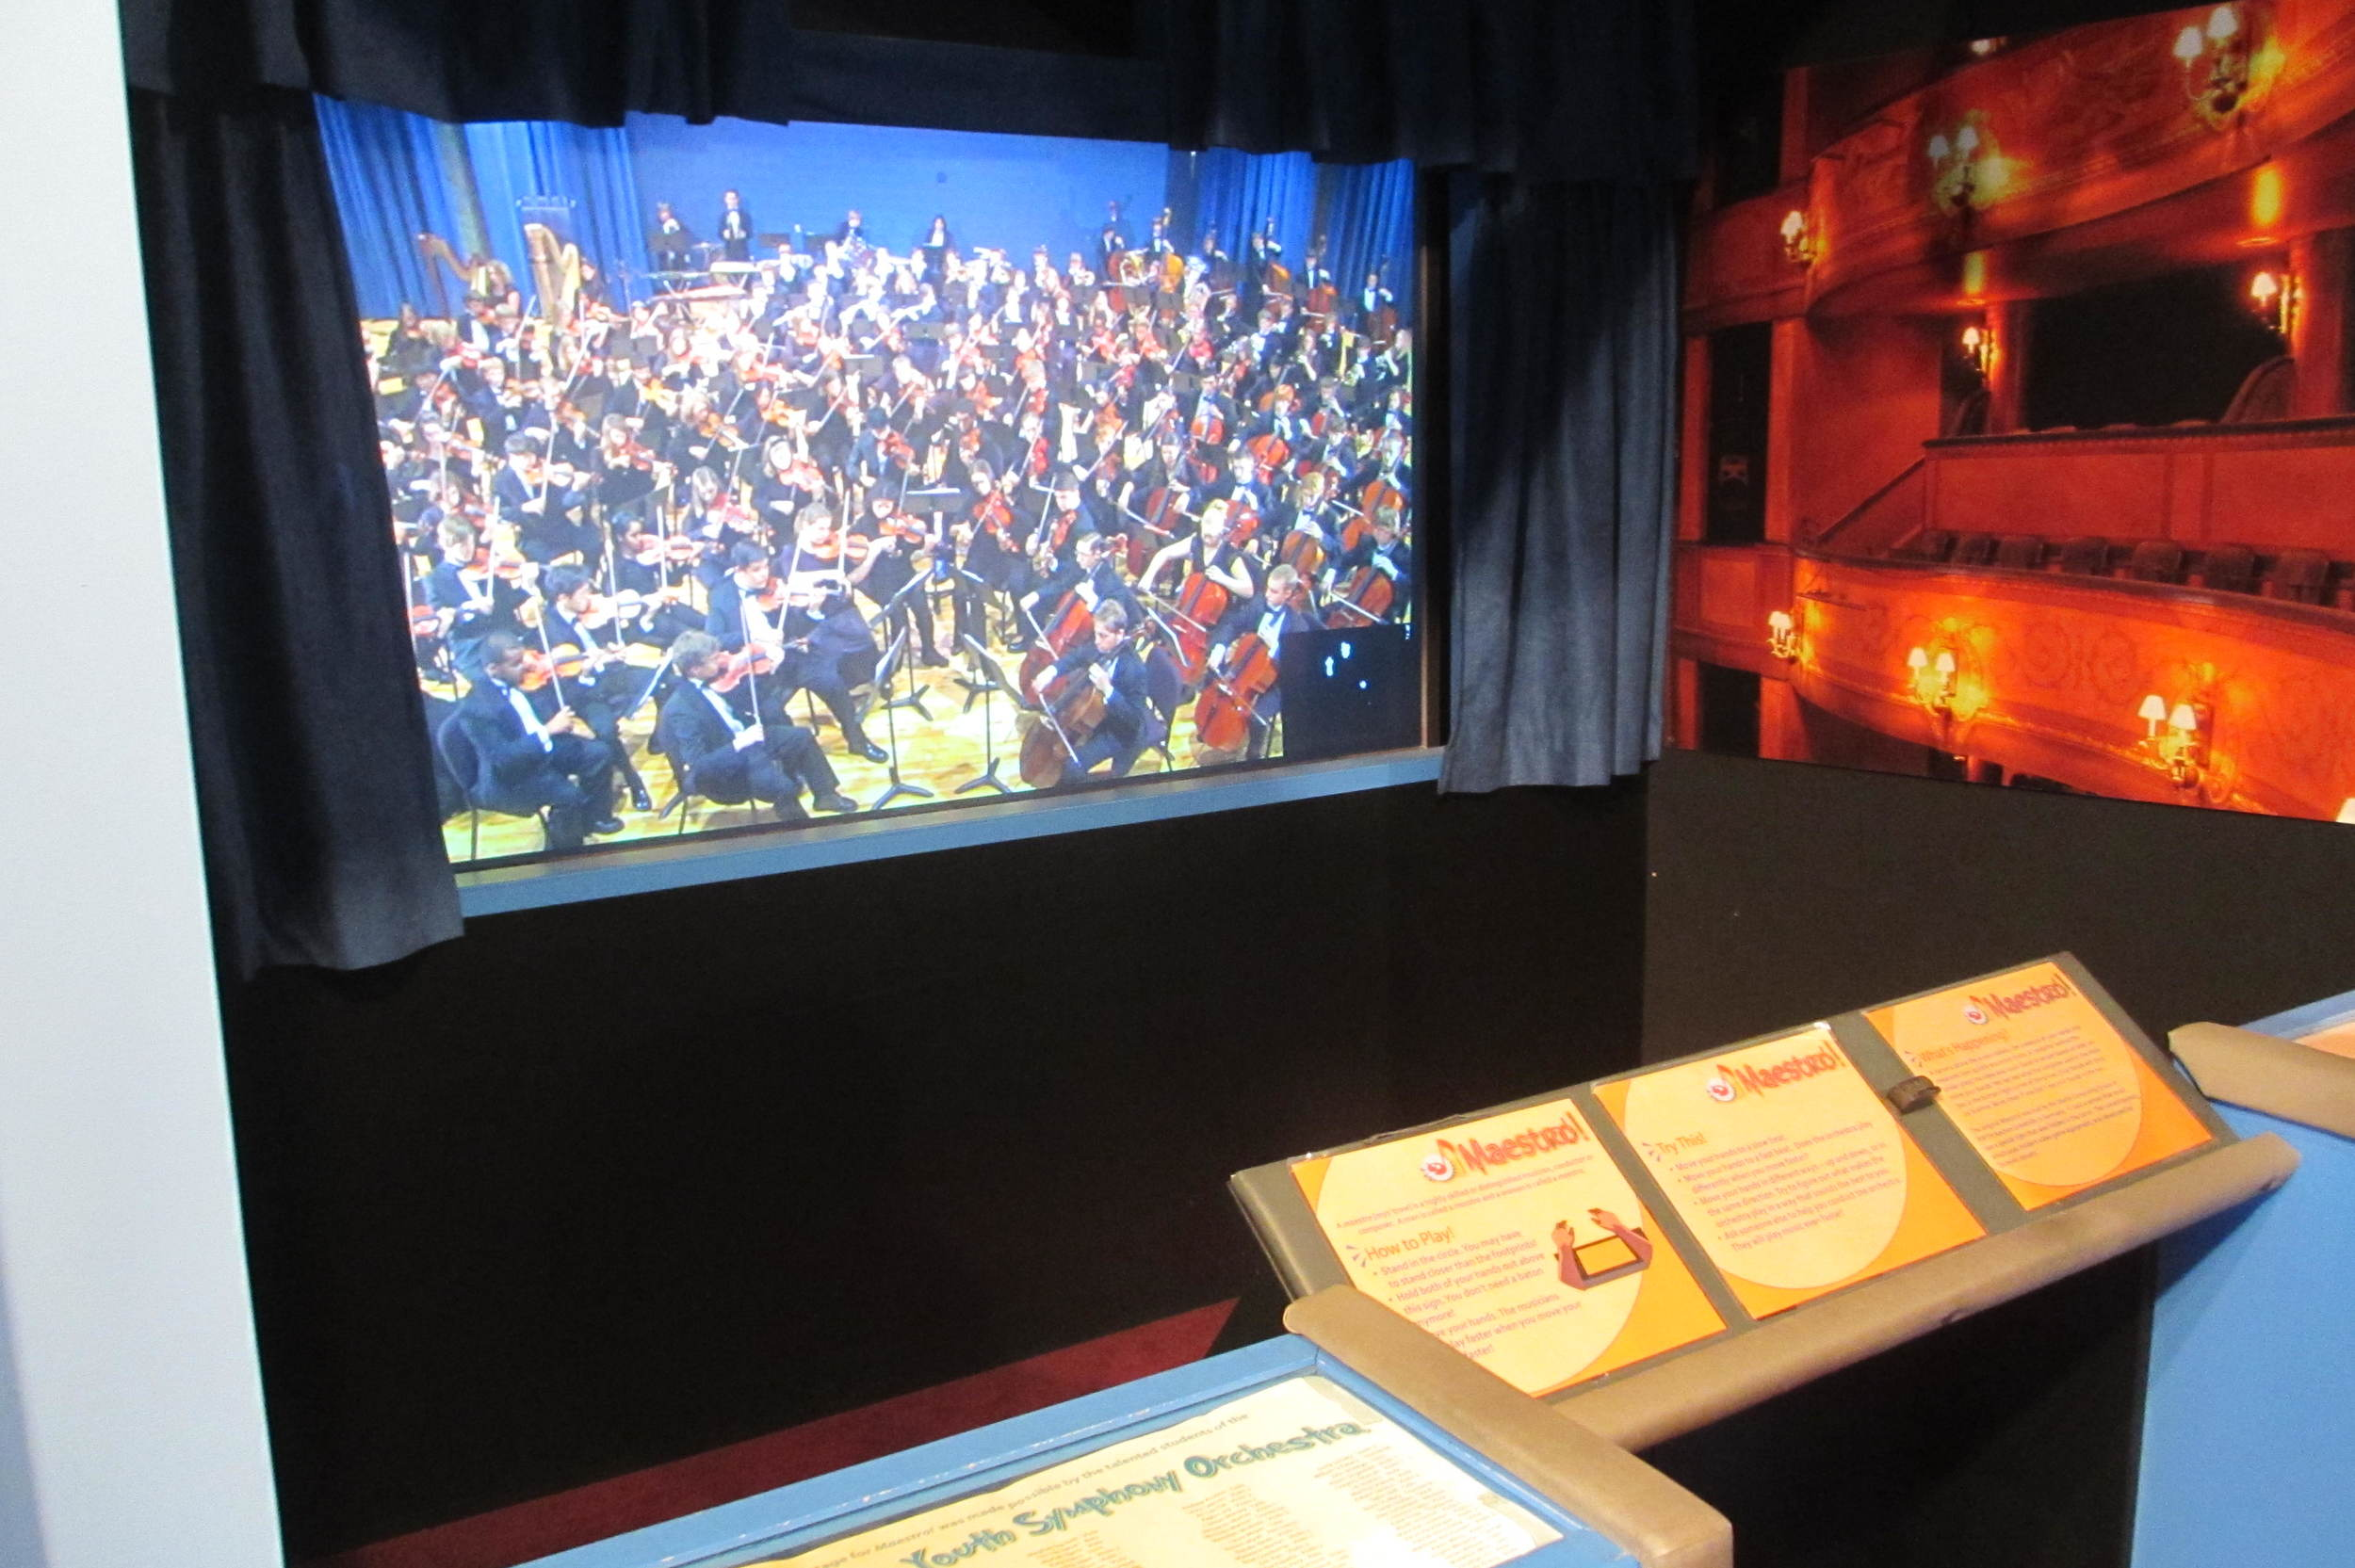 Maestro as it was installed at the Betty Brinn Children's Museum